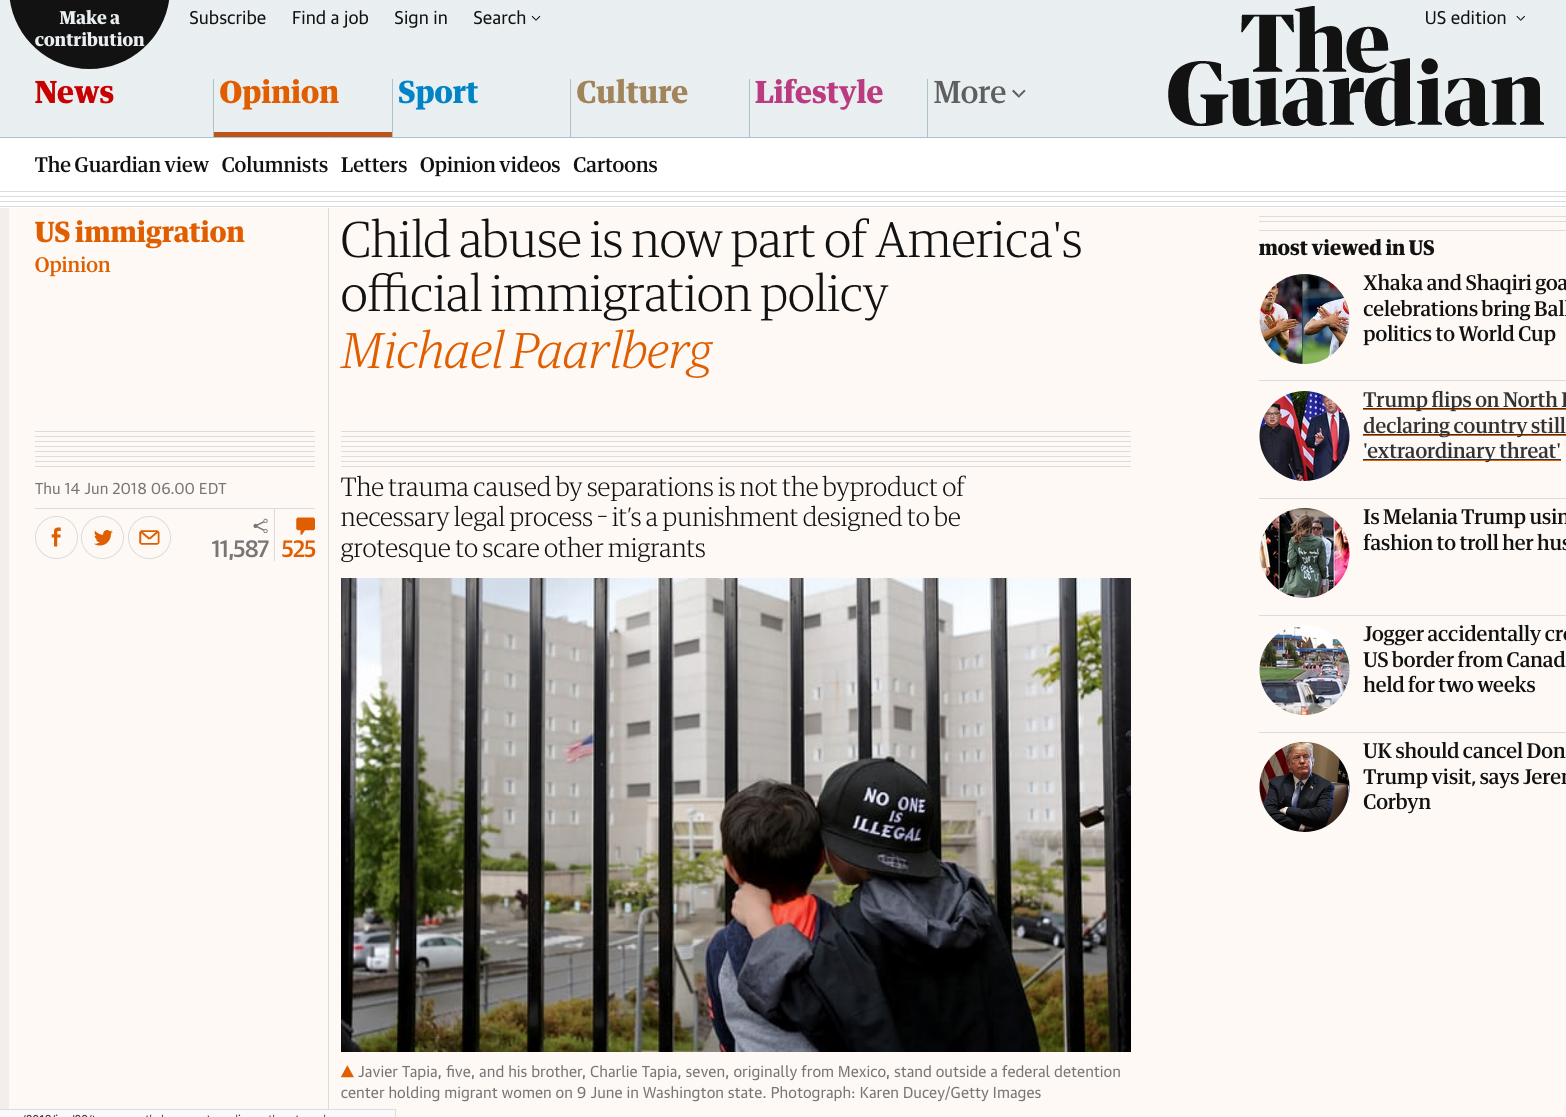 Child abuse is now part of America's official immigration policy Photos for Getty Images, published in The Guardian, June 14, 2018.